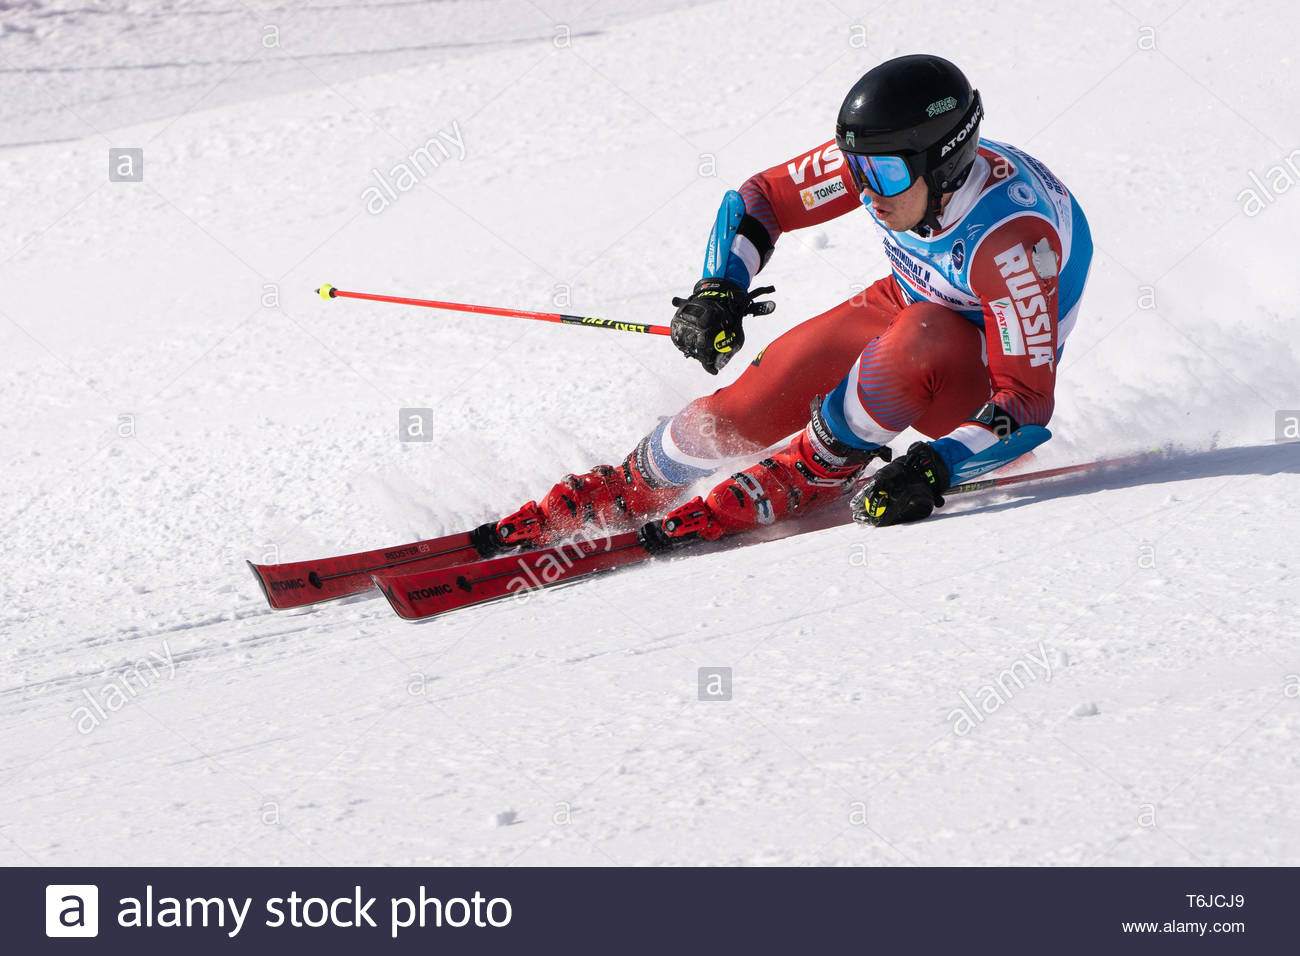 KAMCHATKA PENINSULA, RUSSIA - APR 1, 2019: Mountain skier Alexander Mikhailov (Sakhalin) skiing down slope. Russian Alpine Skiing Cup, International S - Stock Image